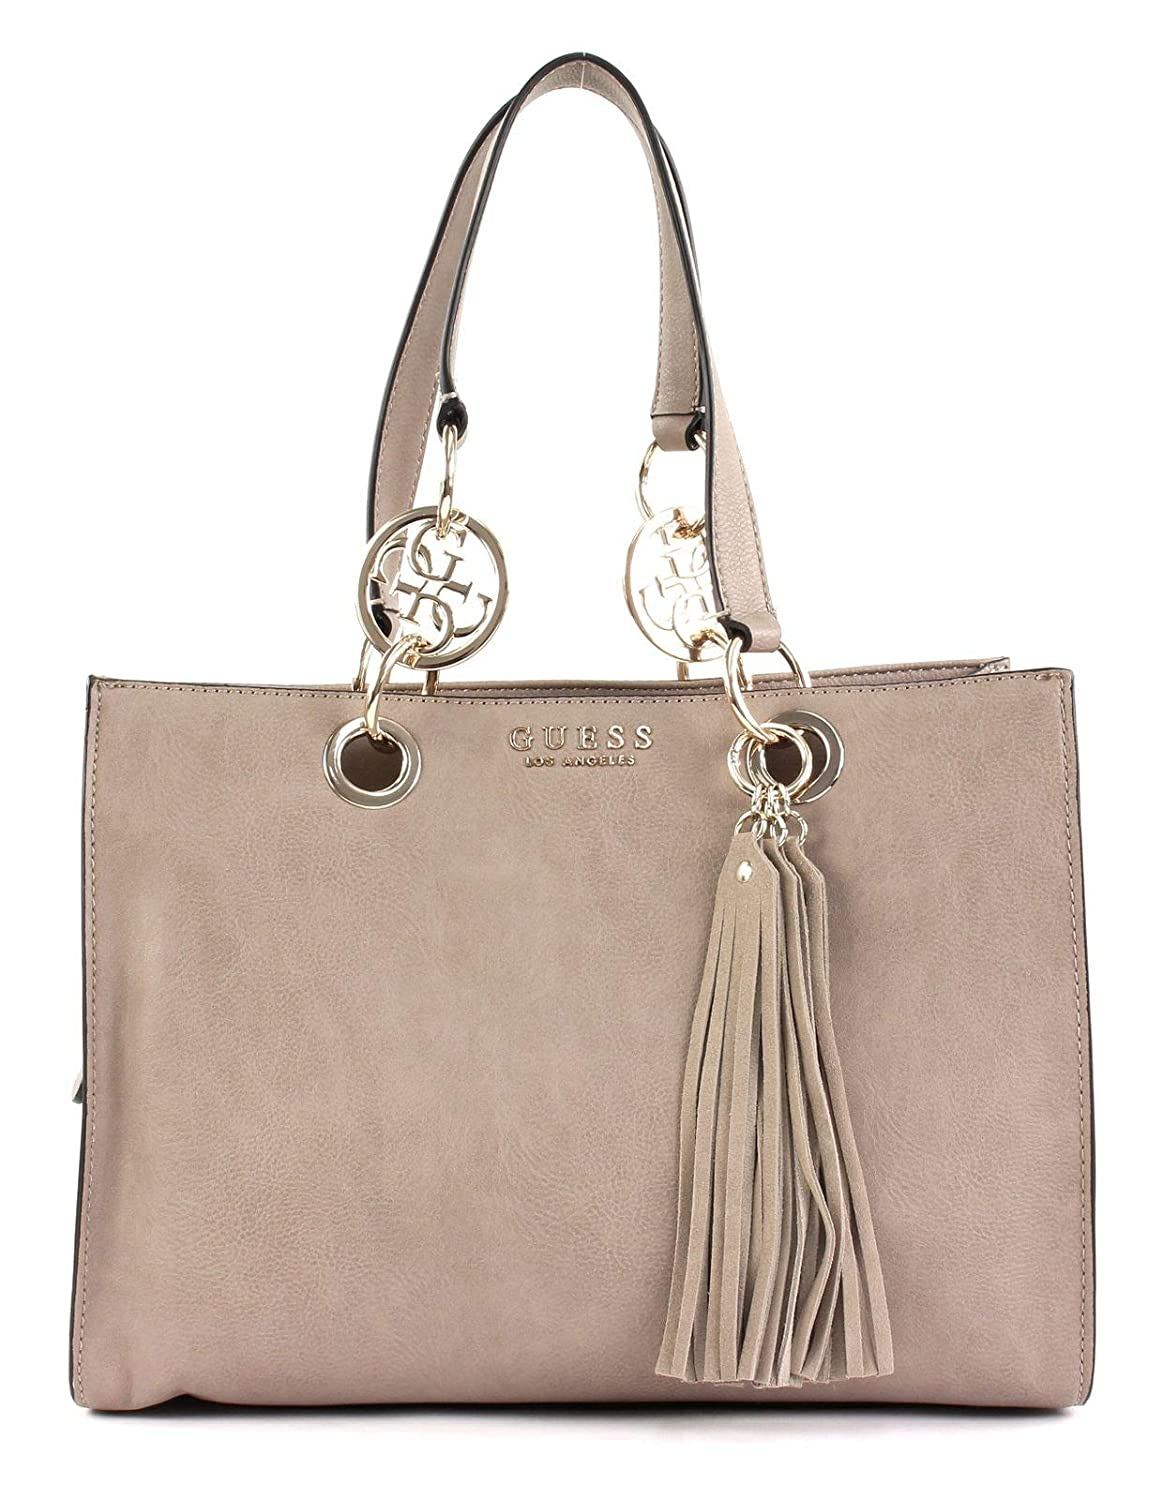 Guess Alana Girlfriend Carryall Taupe: : Schuhe